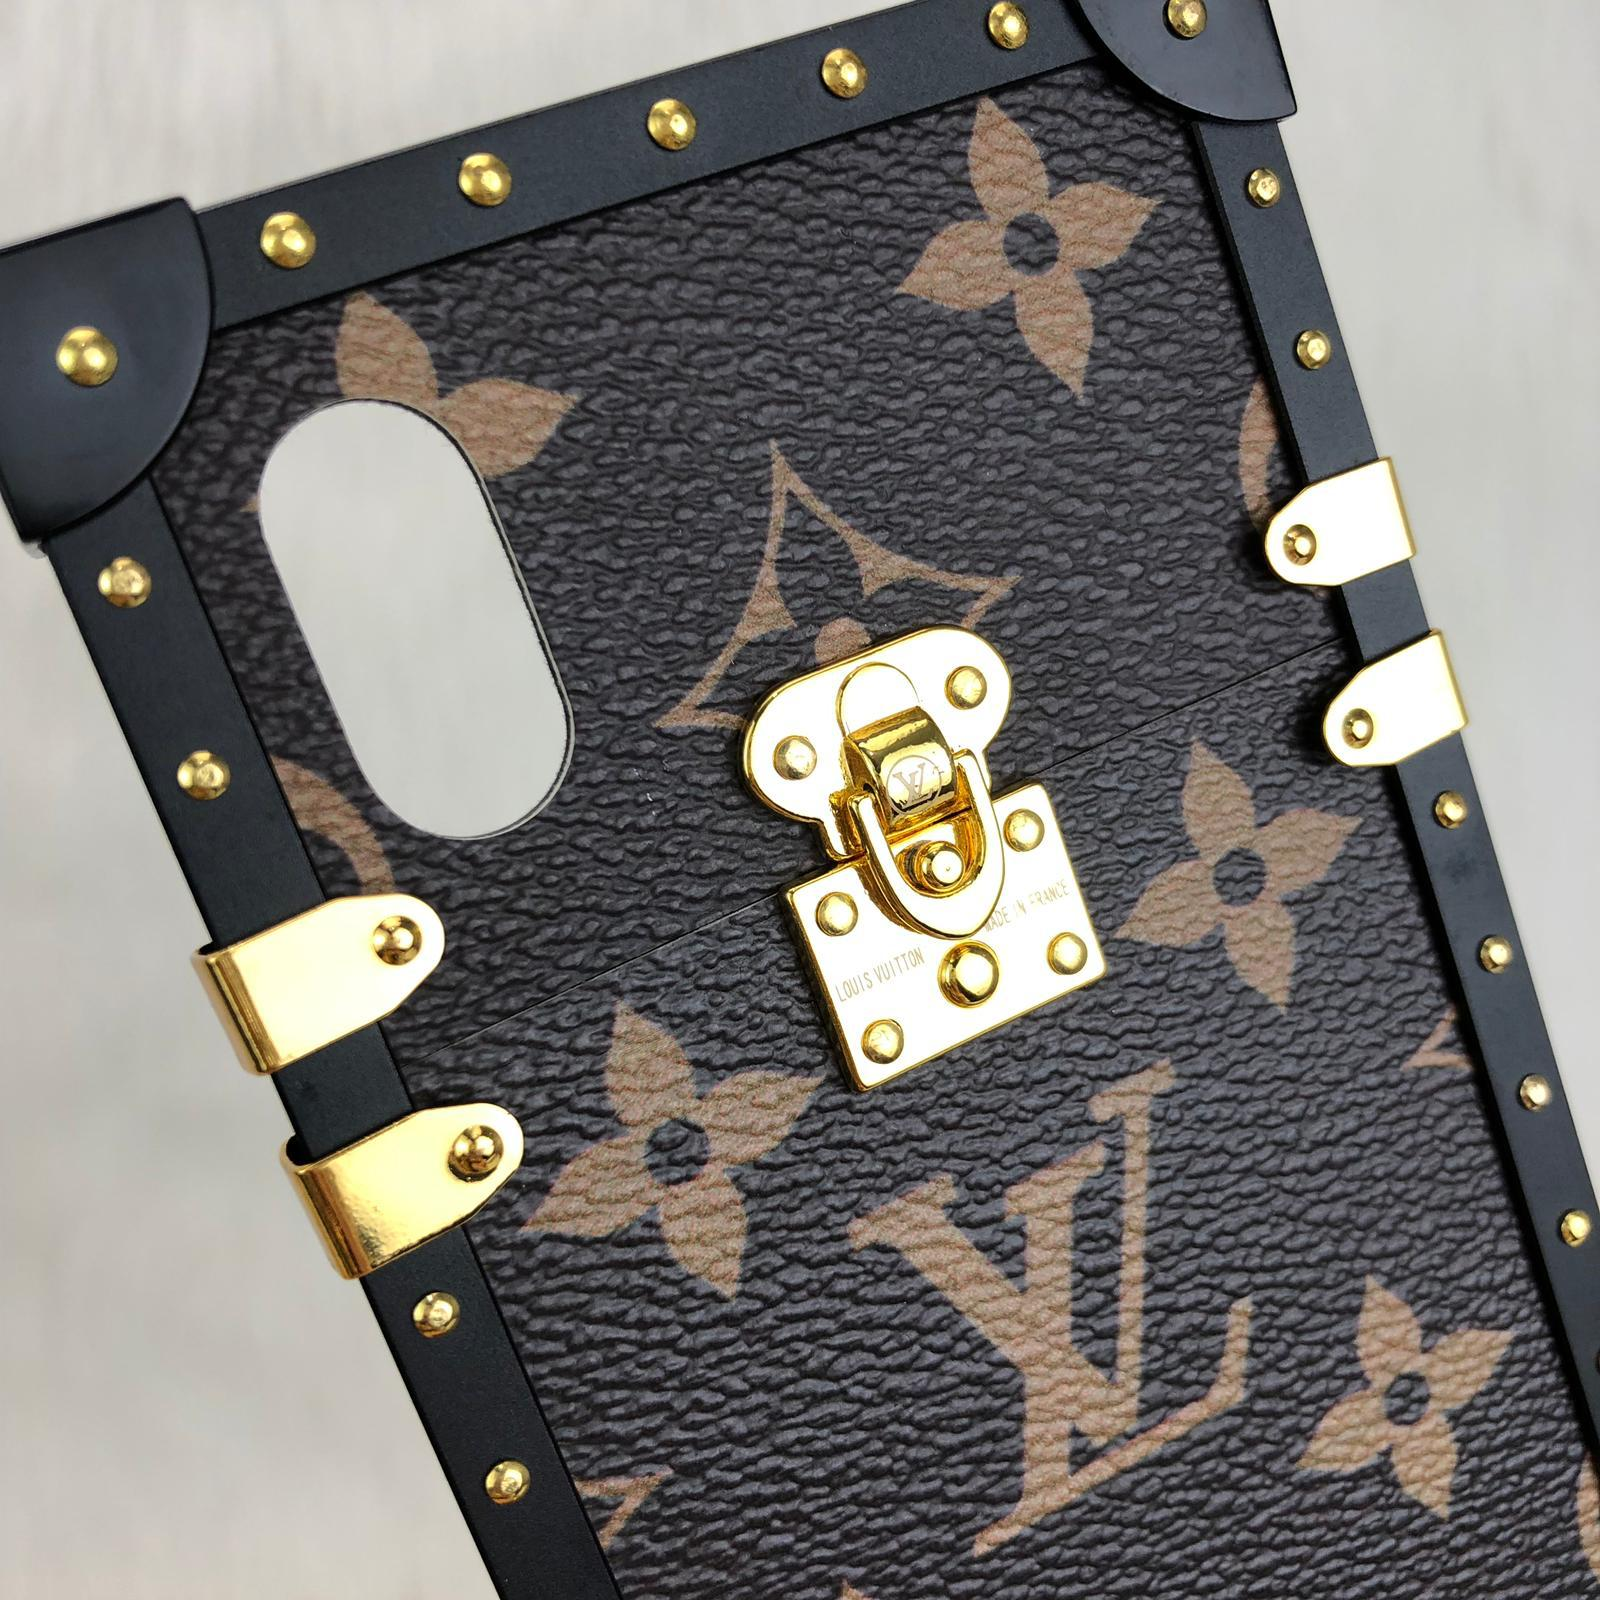 new products 552ae e9f48 Louis Vuitton EYE - TRUNK İPHONE X phone case – World Leather Design